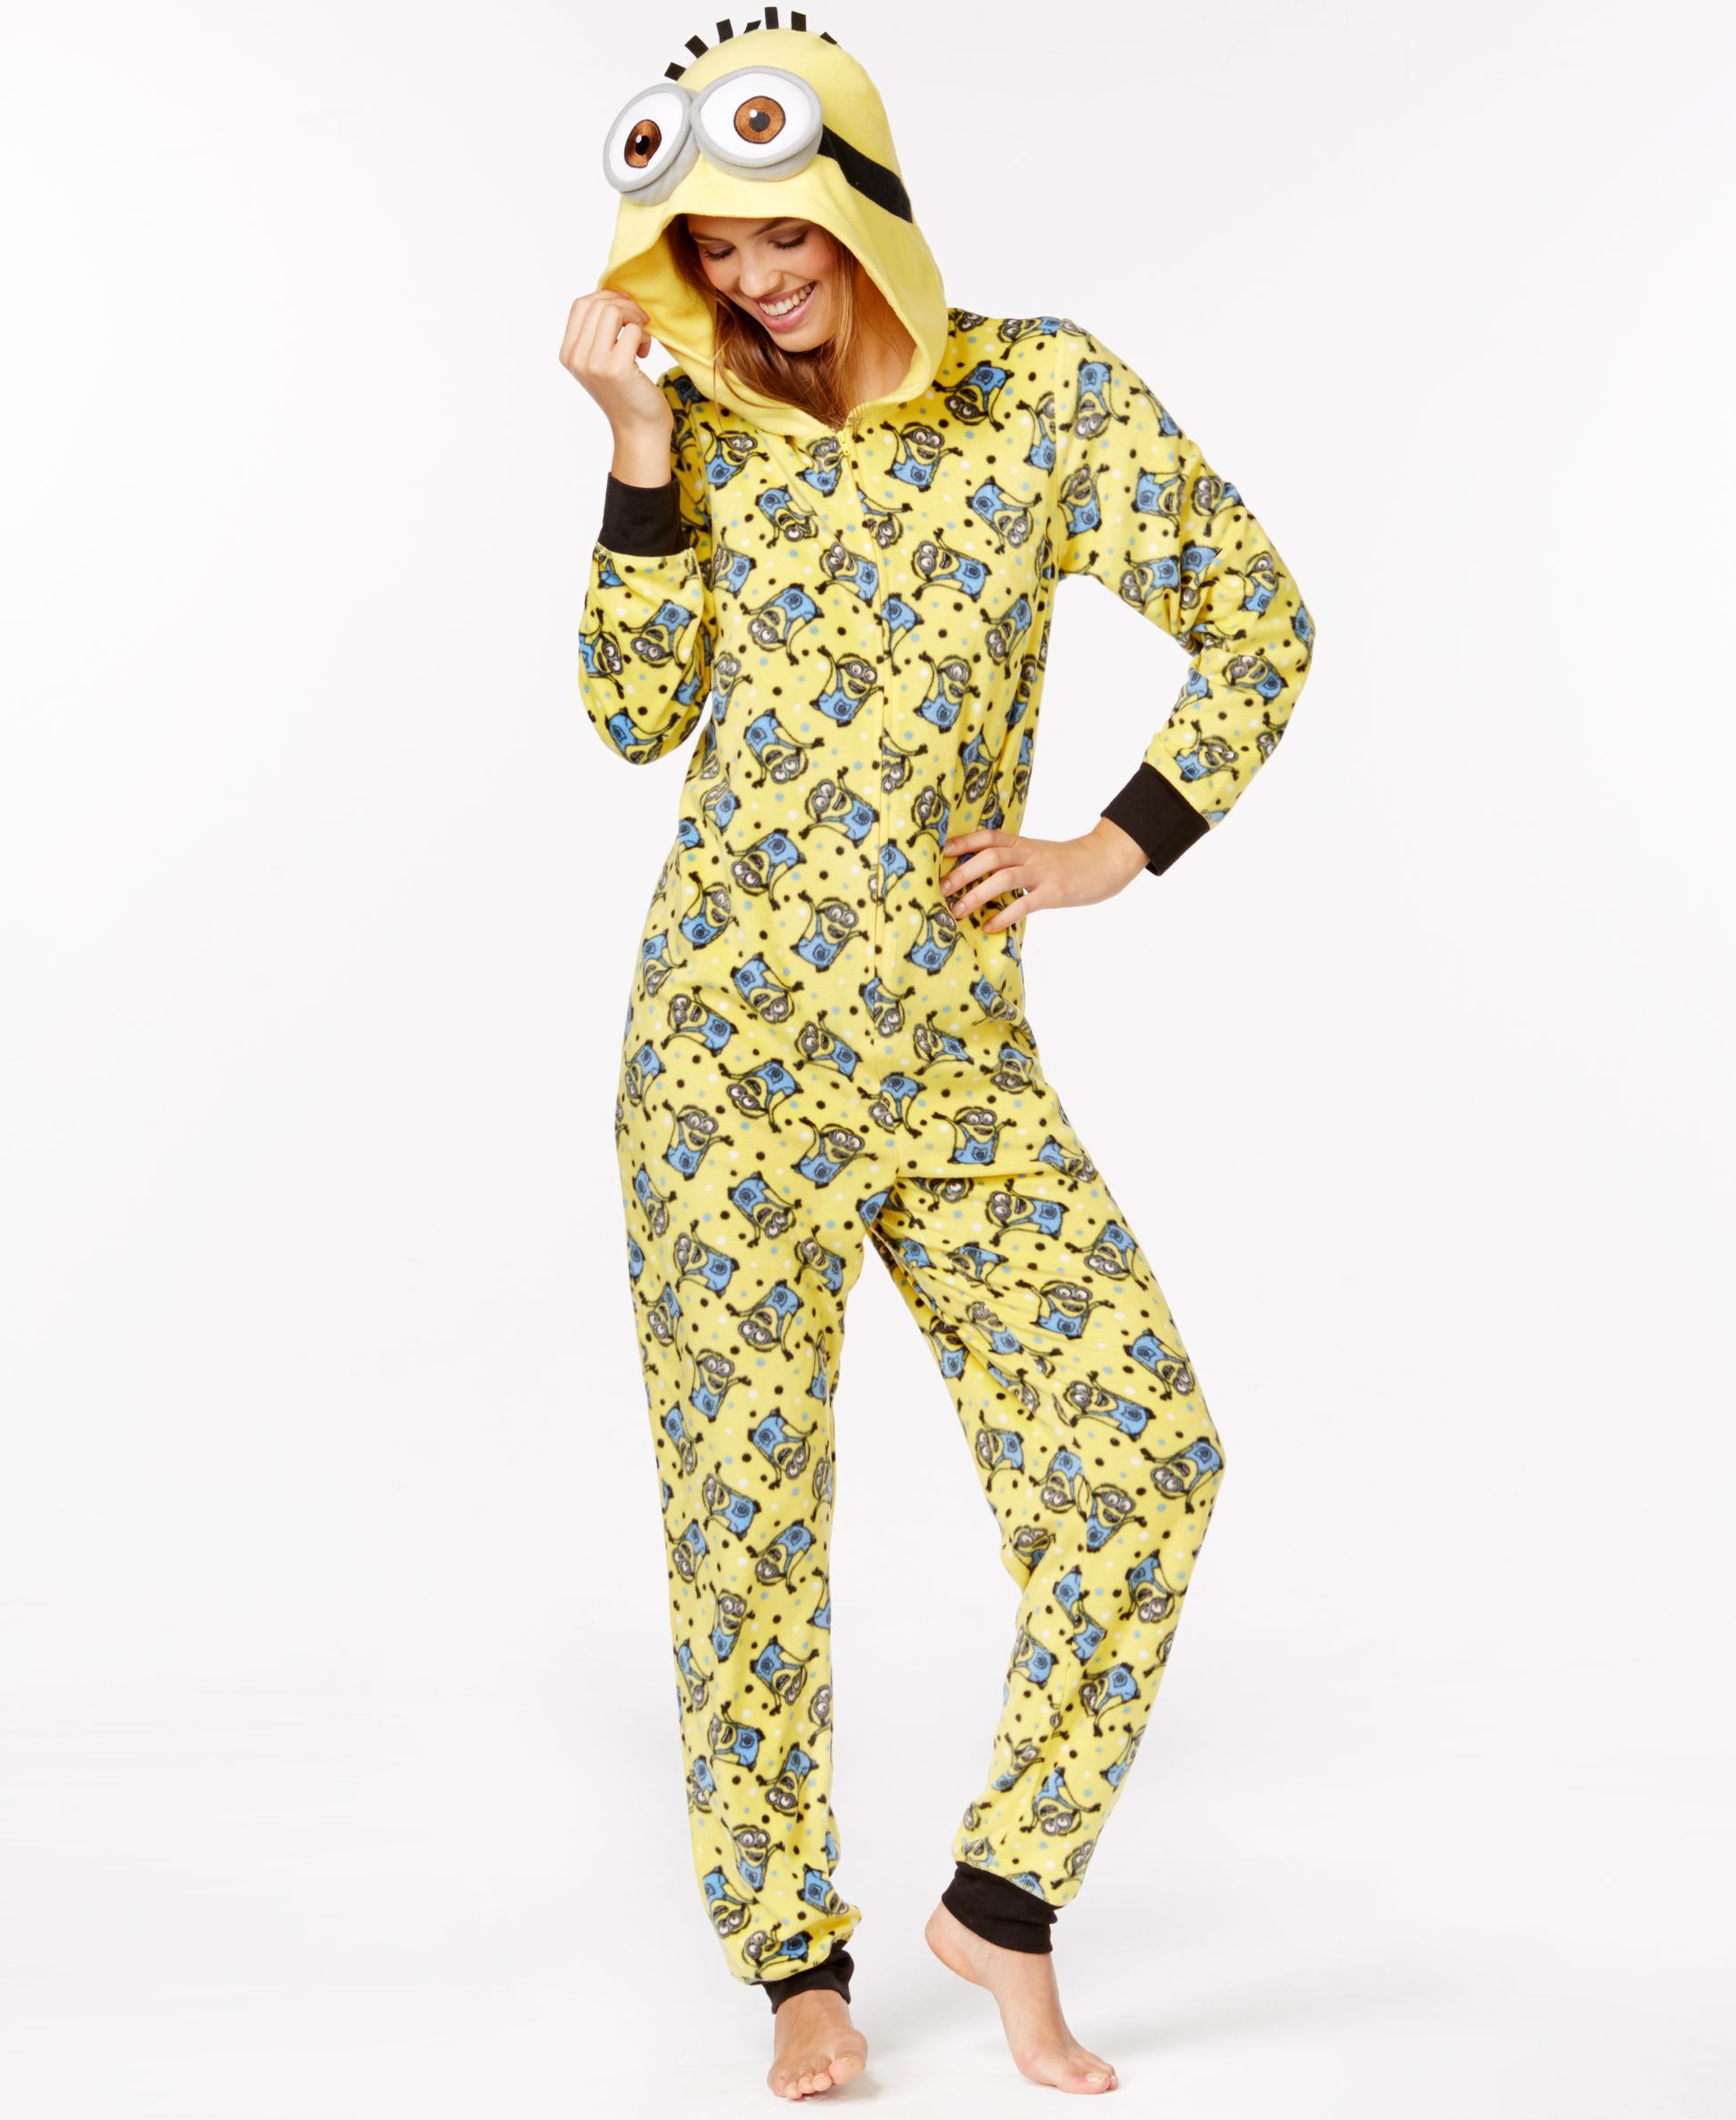 4b317411c9a966 Despicable Me Minion Adult Hooded Onesie | Buy | Adult onesie ...